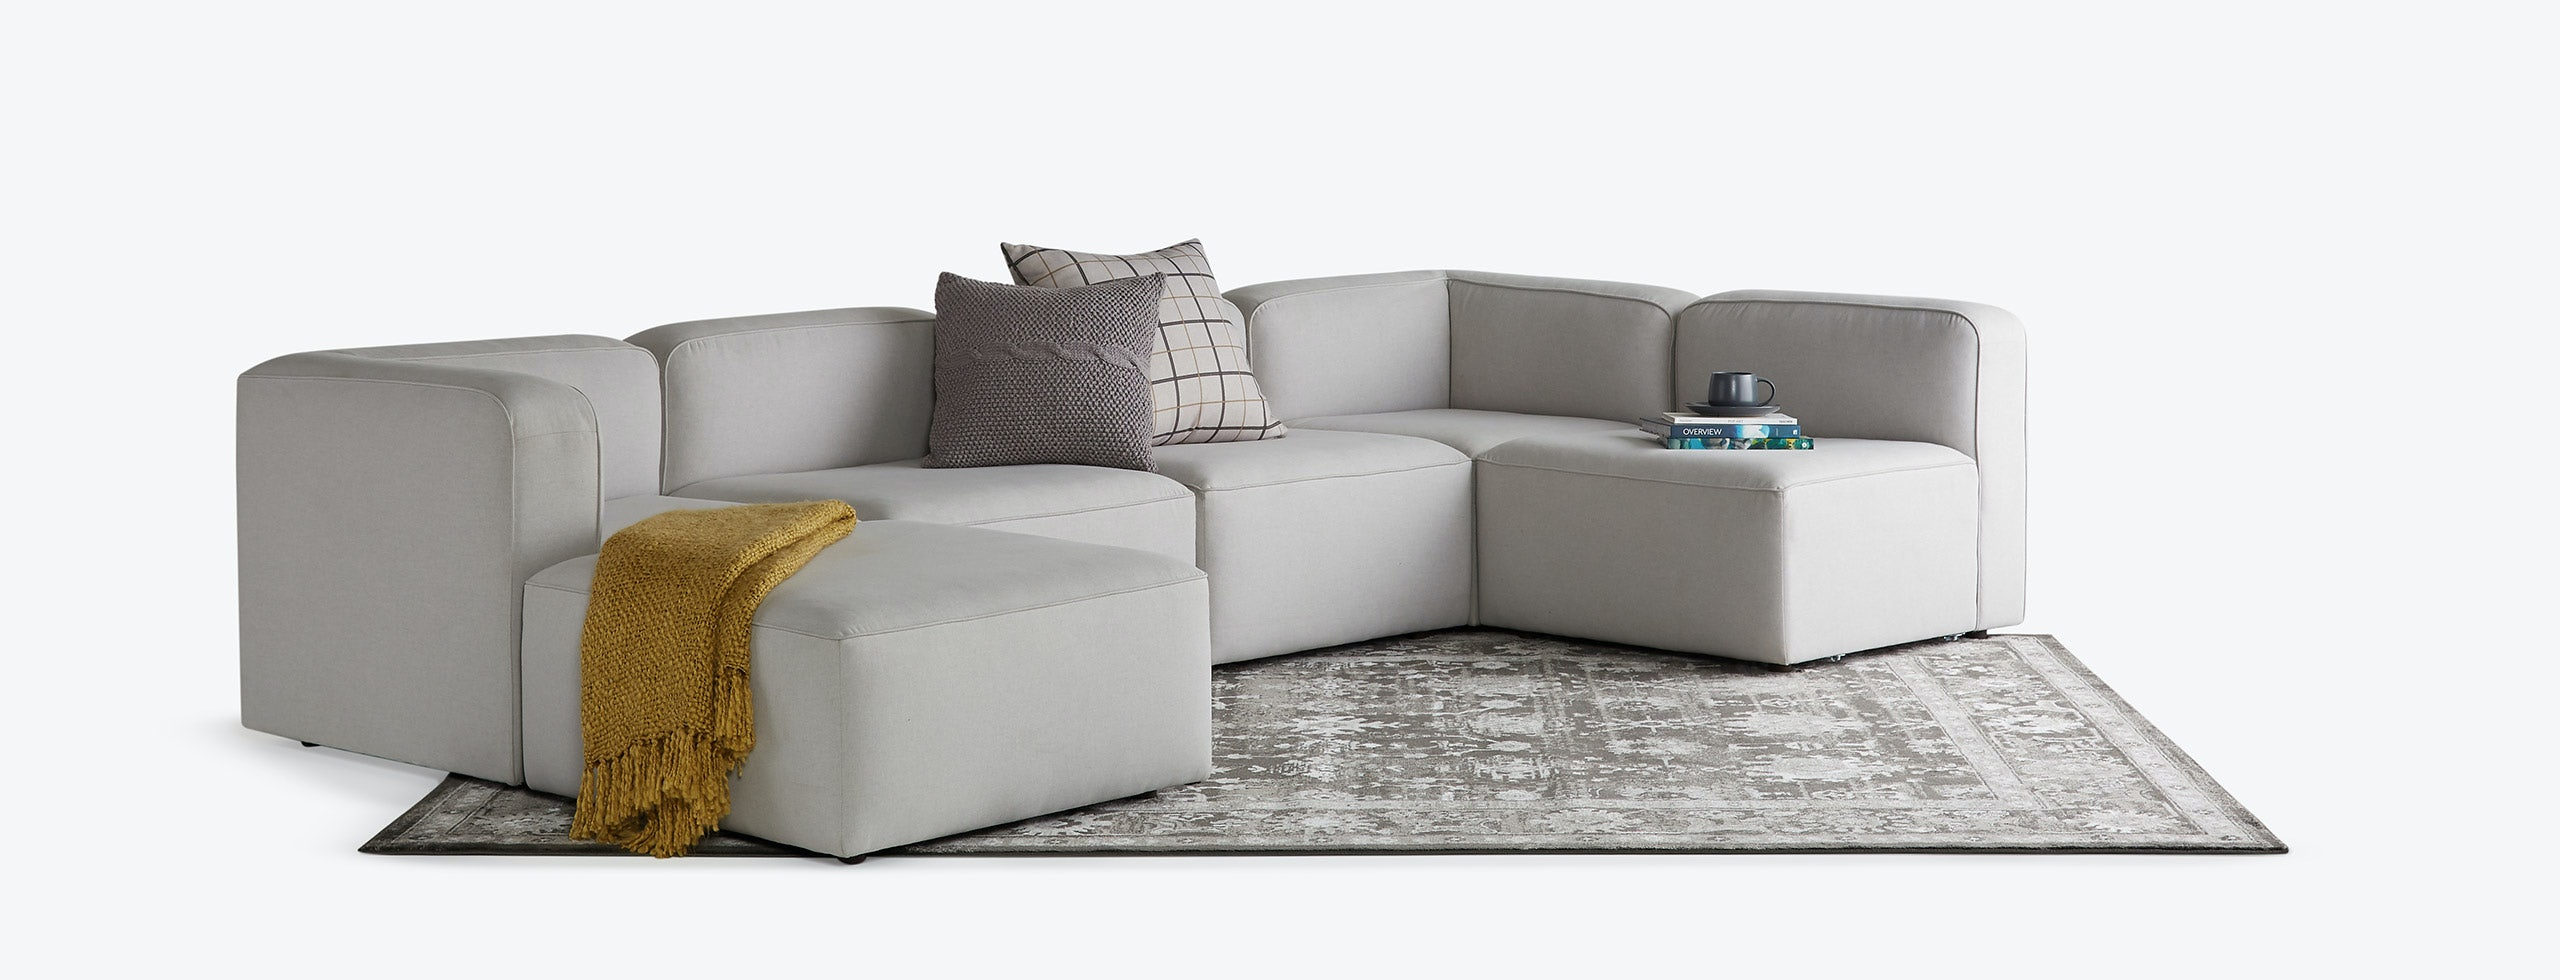 hero logan modular sofa bumper sectional backlog